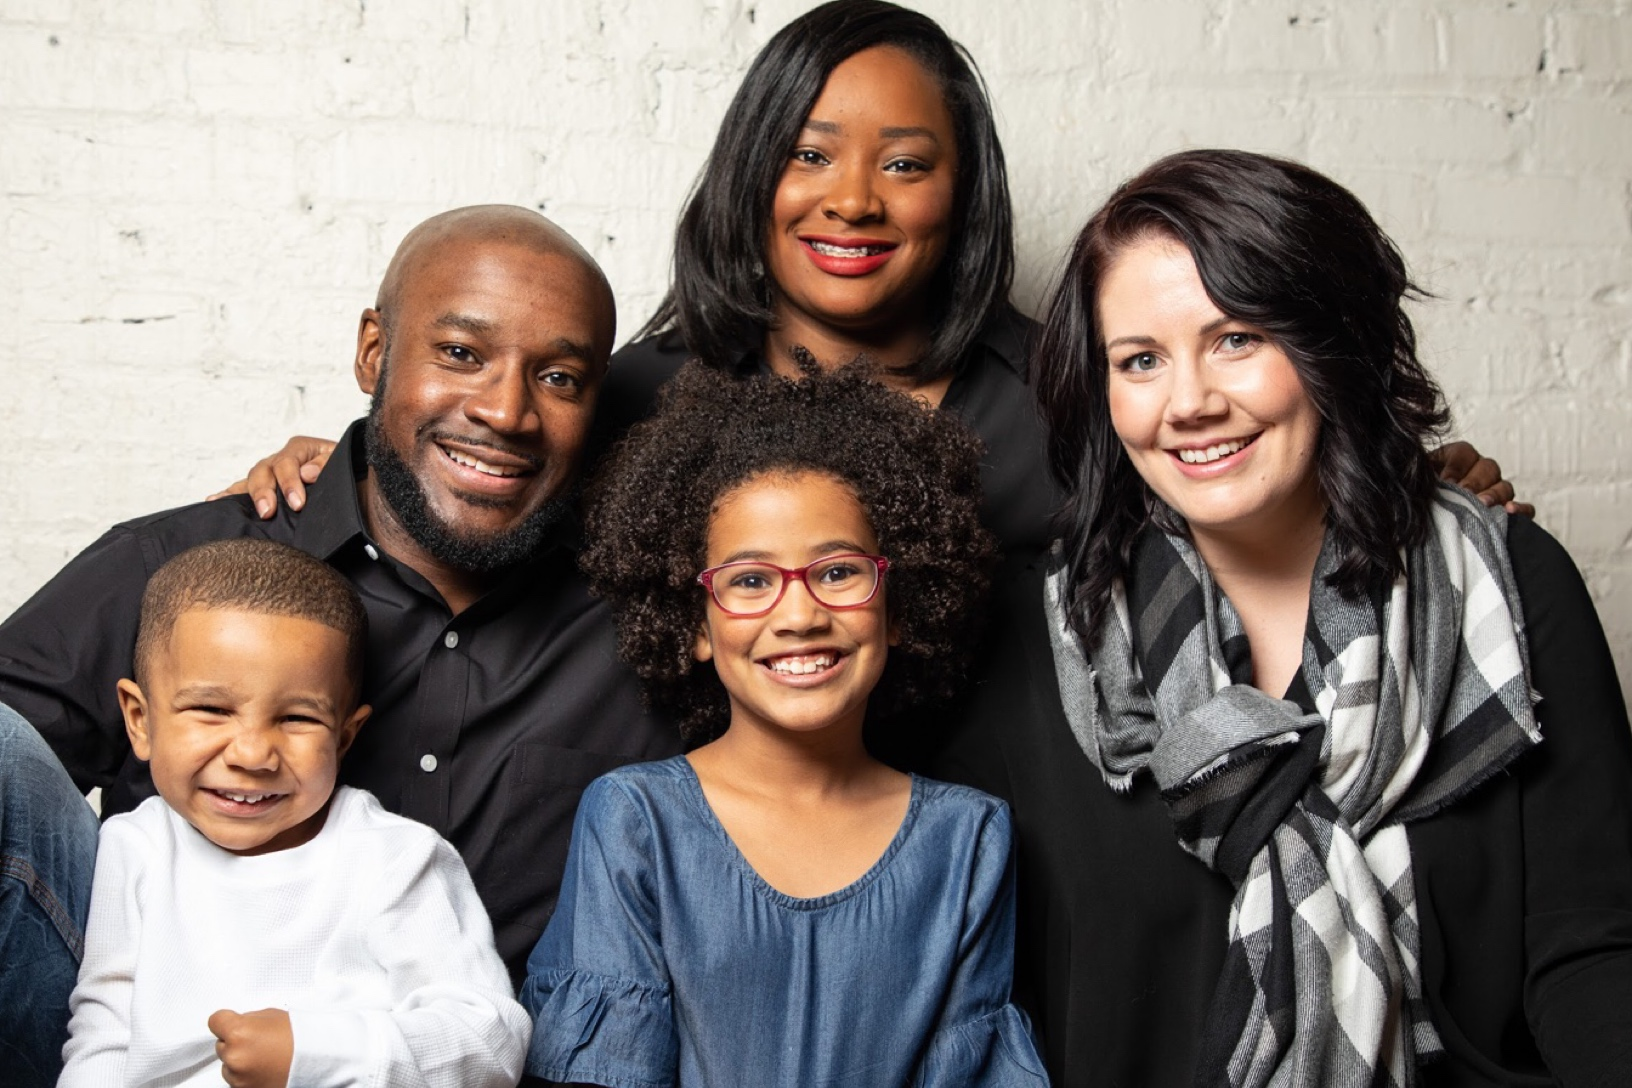 About Us - There are no perfect parents! We are all striving to be better. Learn more about our family here.